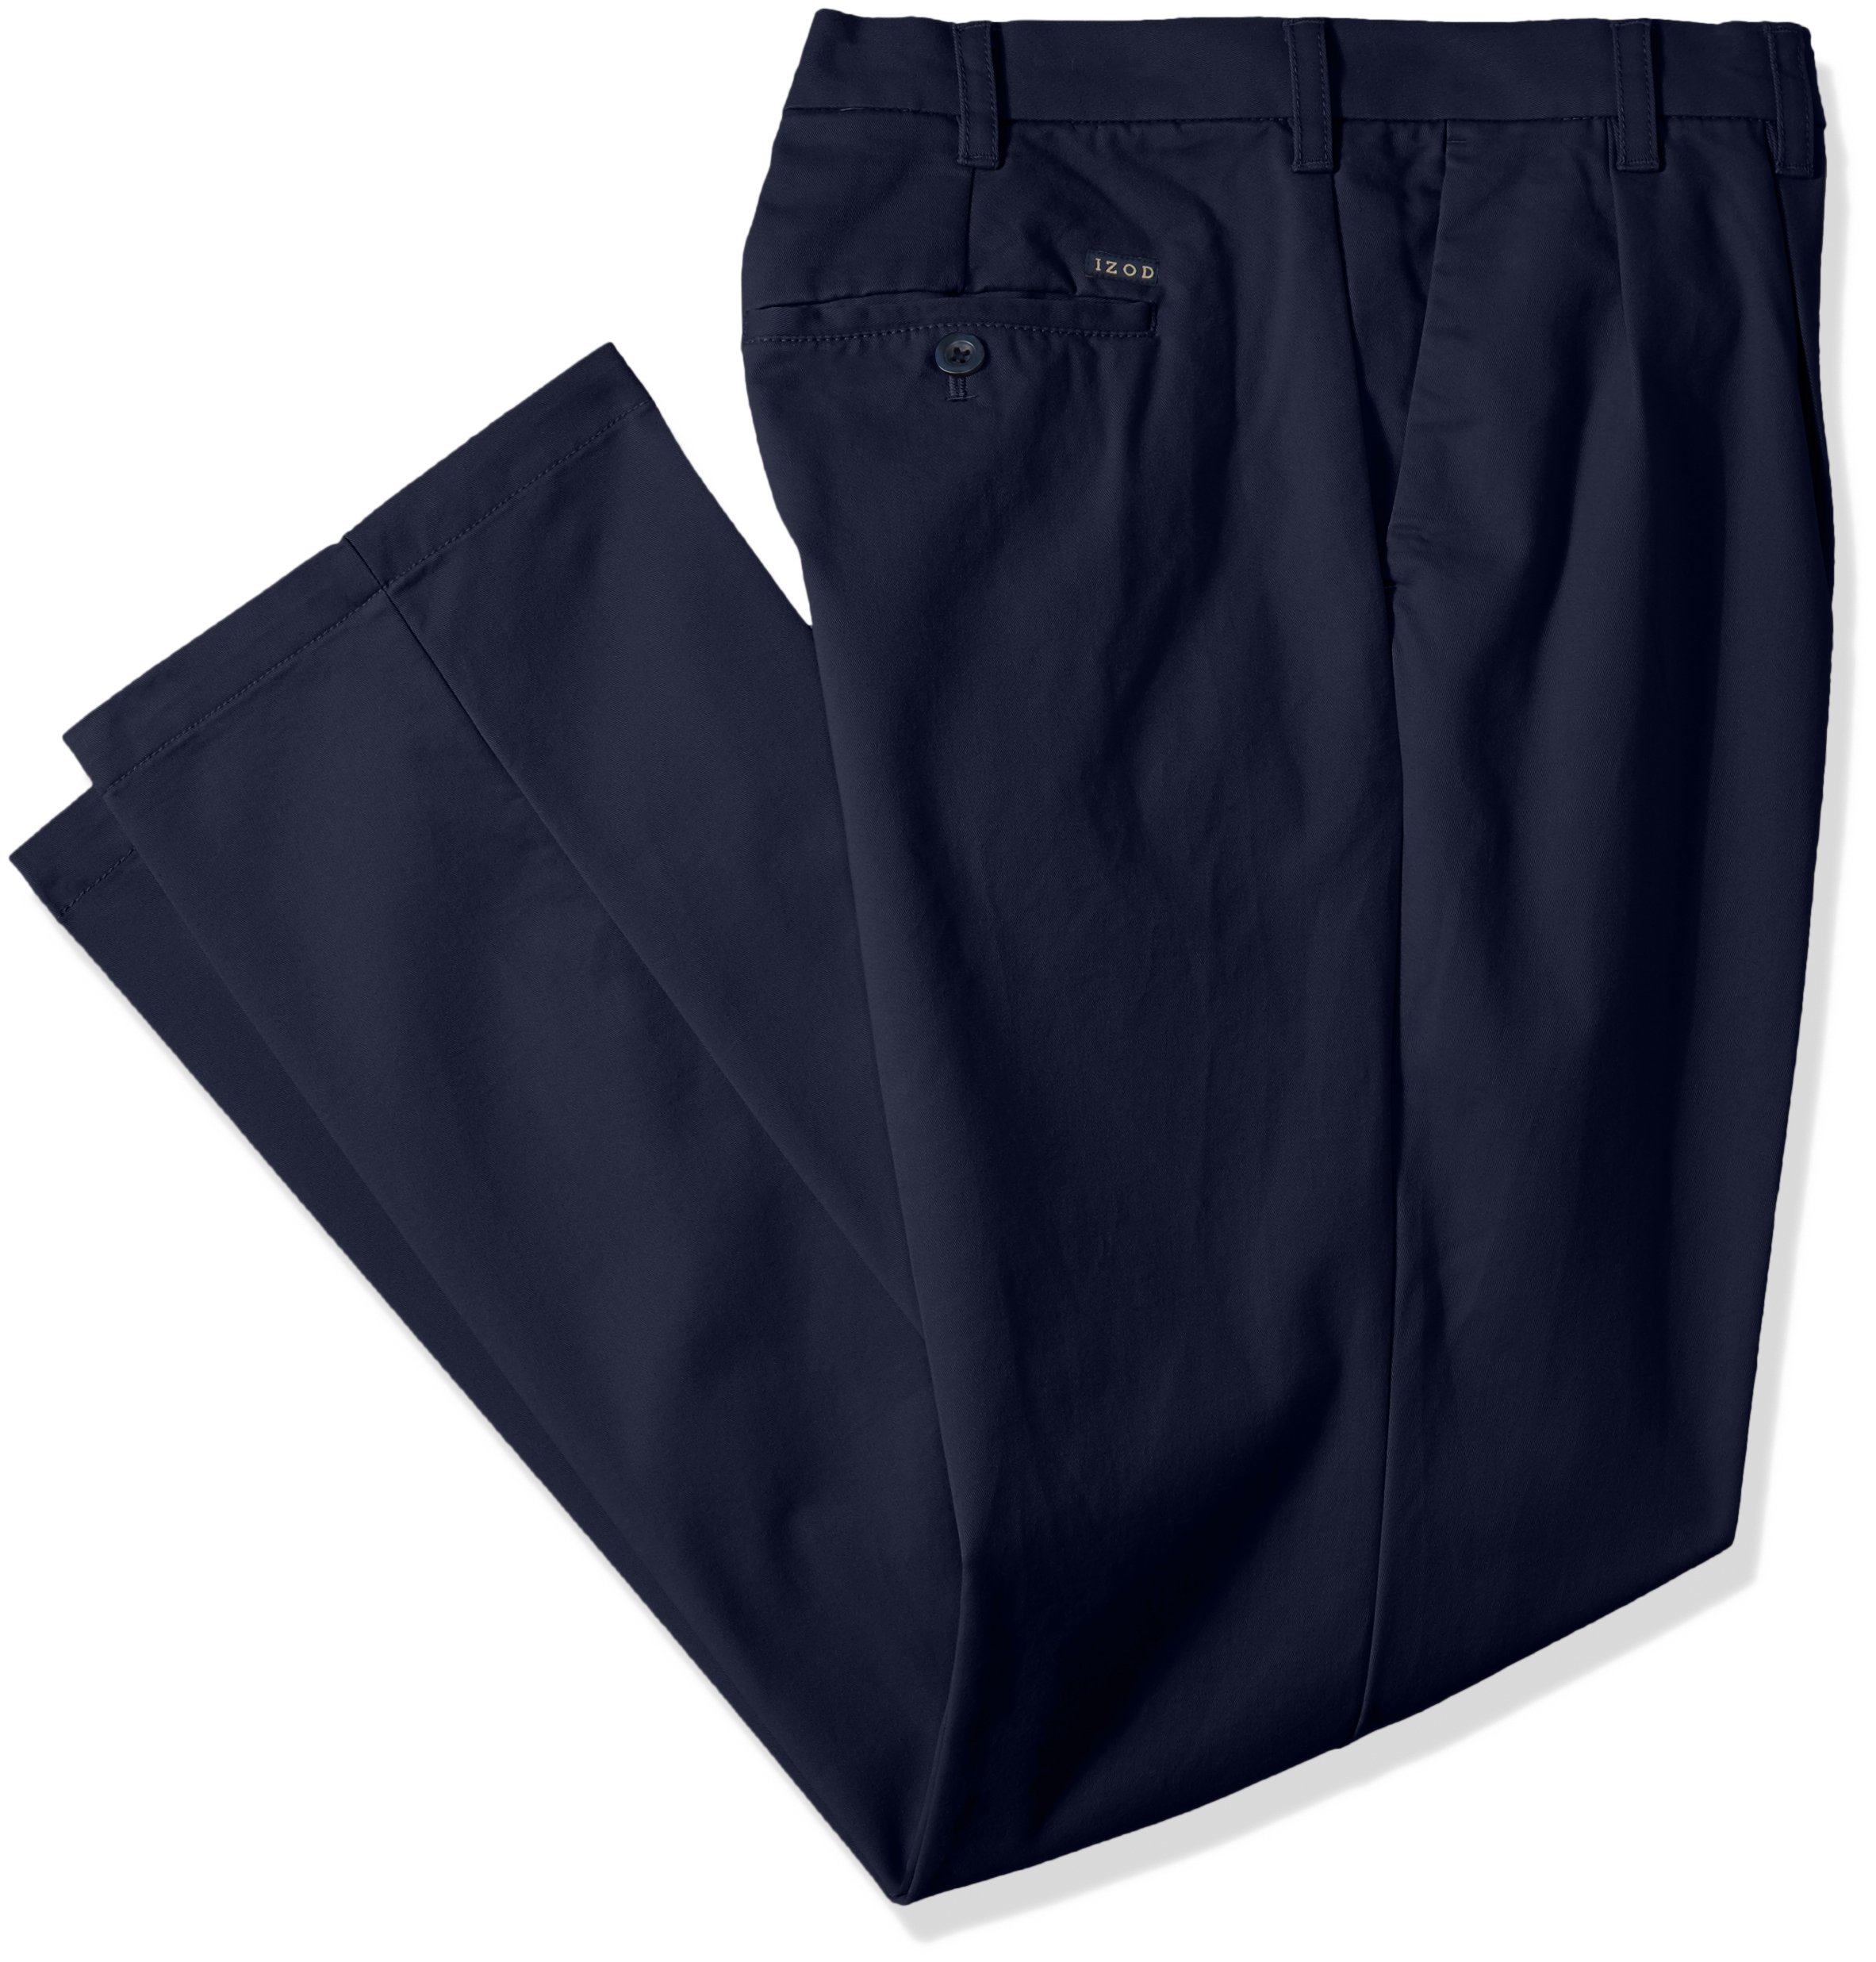 IZOD Men's Big and Tall Performance Stretch Pleated Pant, Navy, 44W X 34L